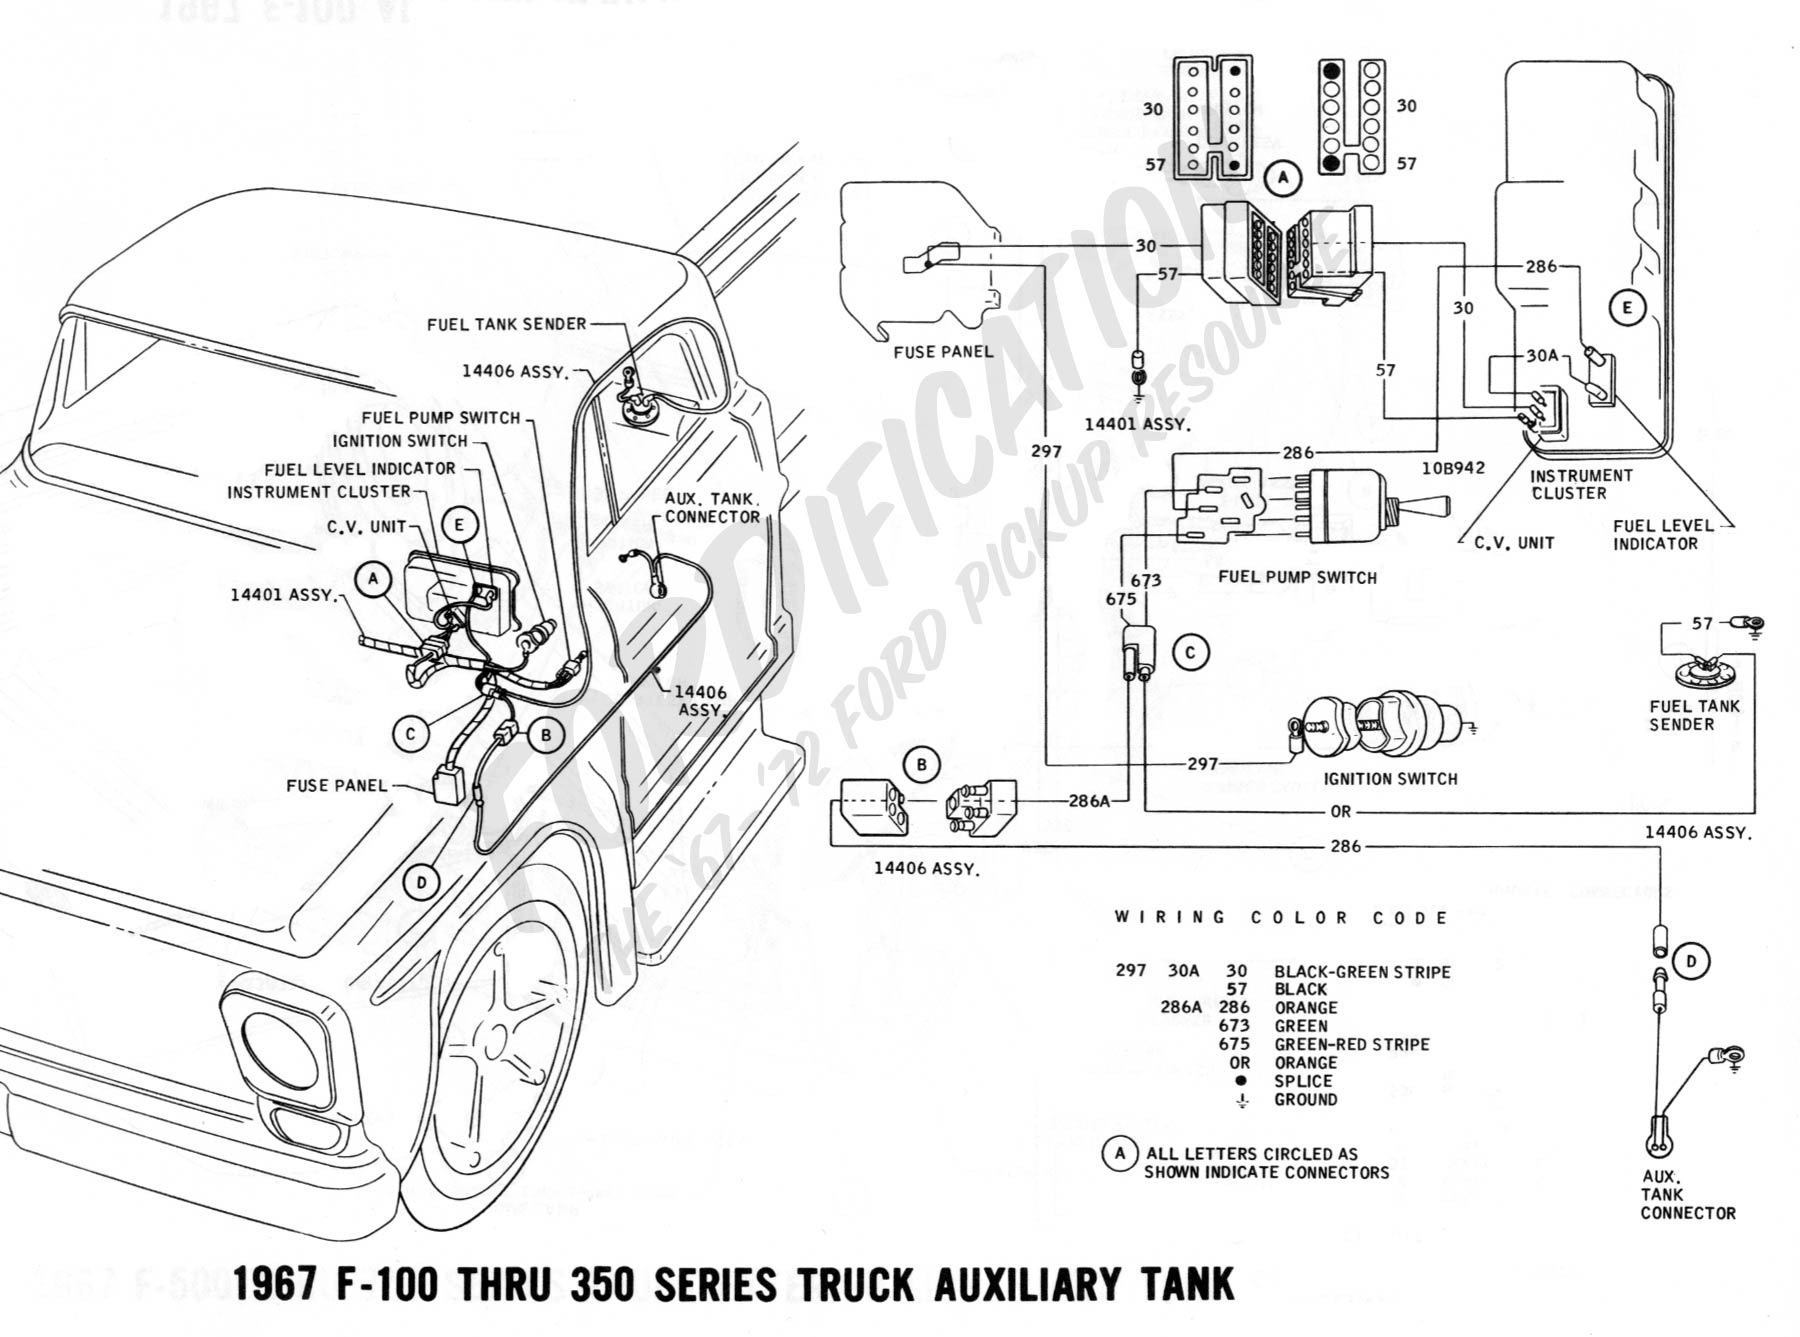 76 Ford Truck Wiring Diagram Library 1976 Corvette Wiper Switch Mustang Electrical Schematics Rh Landingchurchseattle Com F150 2012 F250